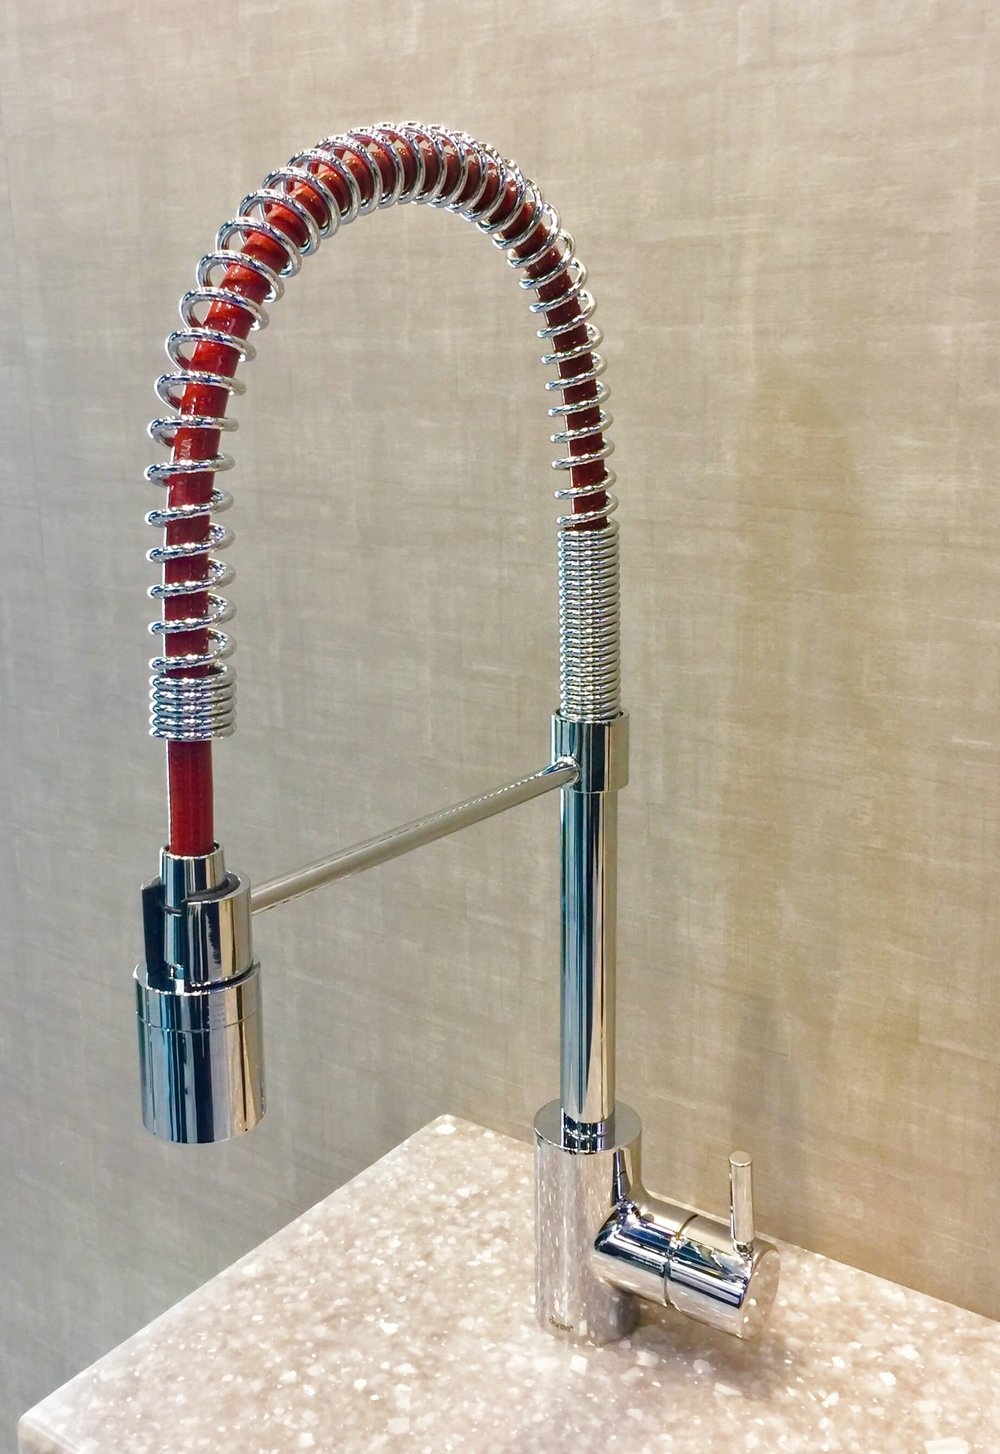 Danze faucet with a colorful, red hose